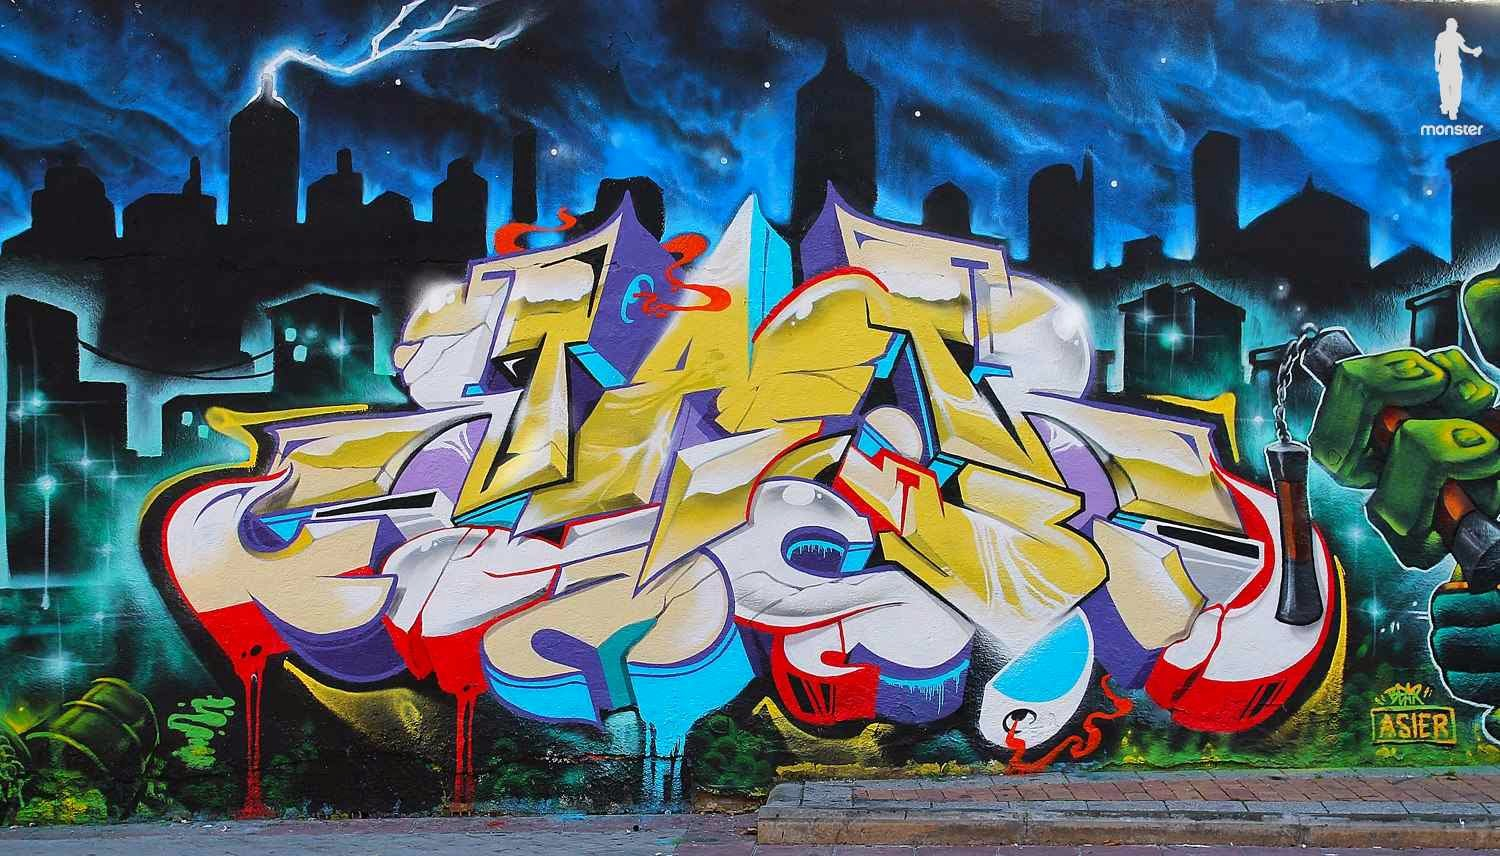 Spray Paint Mask >> Monster Colors,graffiti Blog,spray paint,cans street art,tags,taggging,pen,graff blog: Graffiti ...